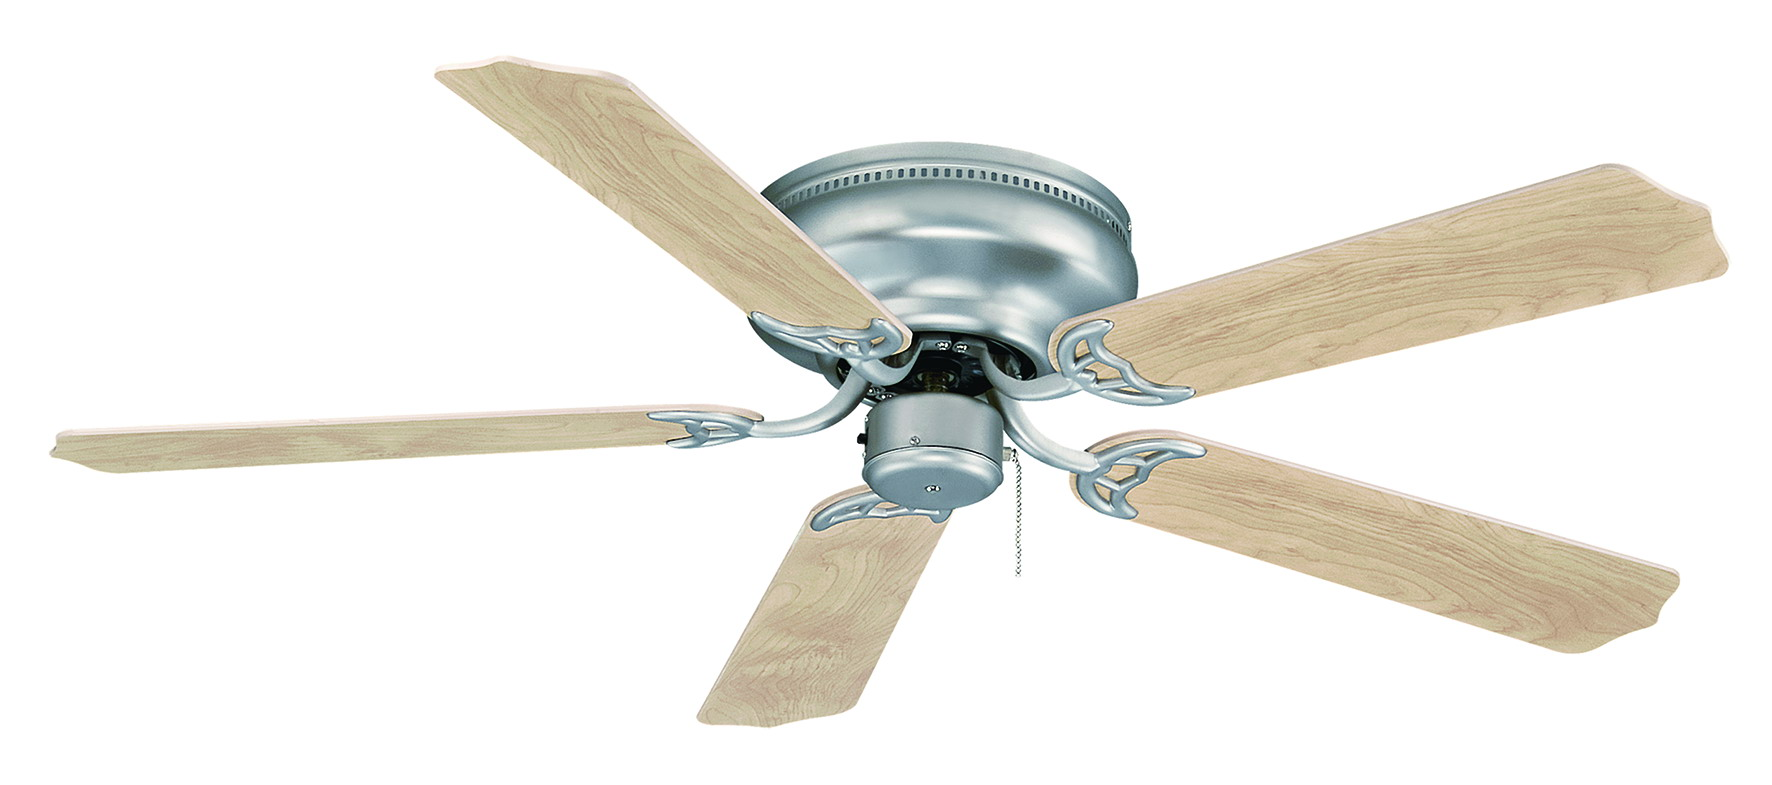 Ceiling Fans Rp Lighting Wiring Two In Series 1062 Royal Knight Hugger 5 Blade 52